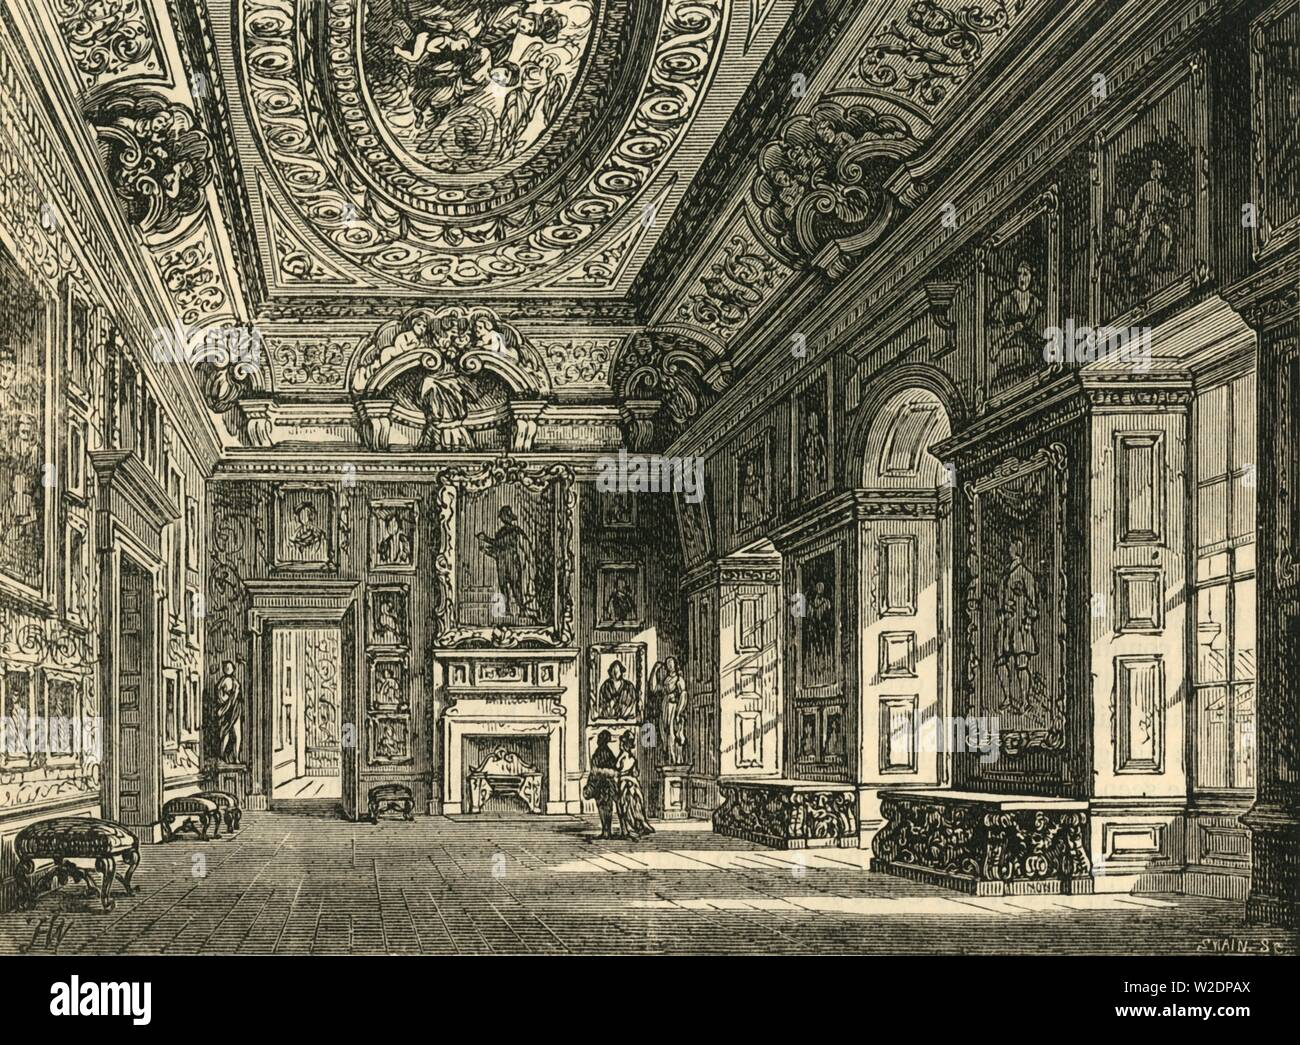 """'Queen Caroline's Drawing-Room, Kensington Palace', c1876. Kensington Palace, residence of the British Royal Family since 17th century. Originally a Jacobean mansion bought by William and Mary who instructed Sir Christopher Wren to expand it in 1689. From """"Old and New London: A Narrative of Its History, Its People, and Its Places. The Western and Northern Studies"""", by Edward Walford. [Cassell, Petter, Galpin & Co., London, Paris & New York] - Stock Image"""